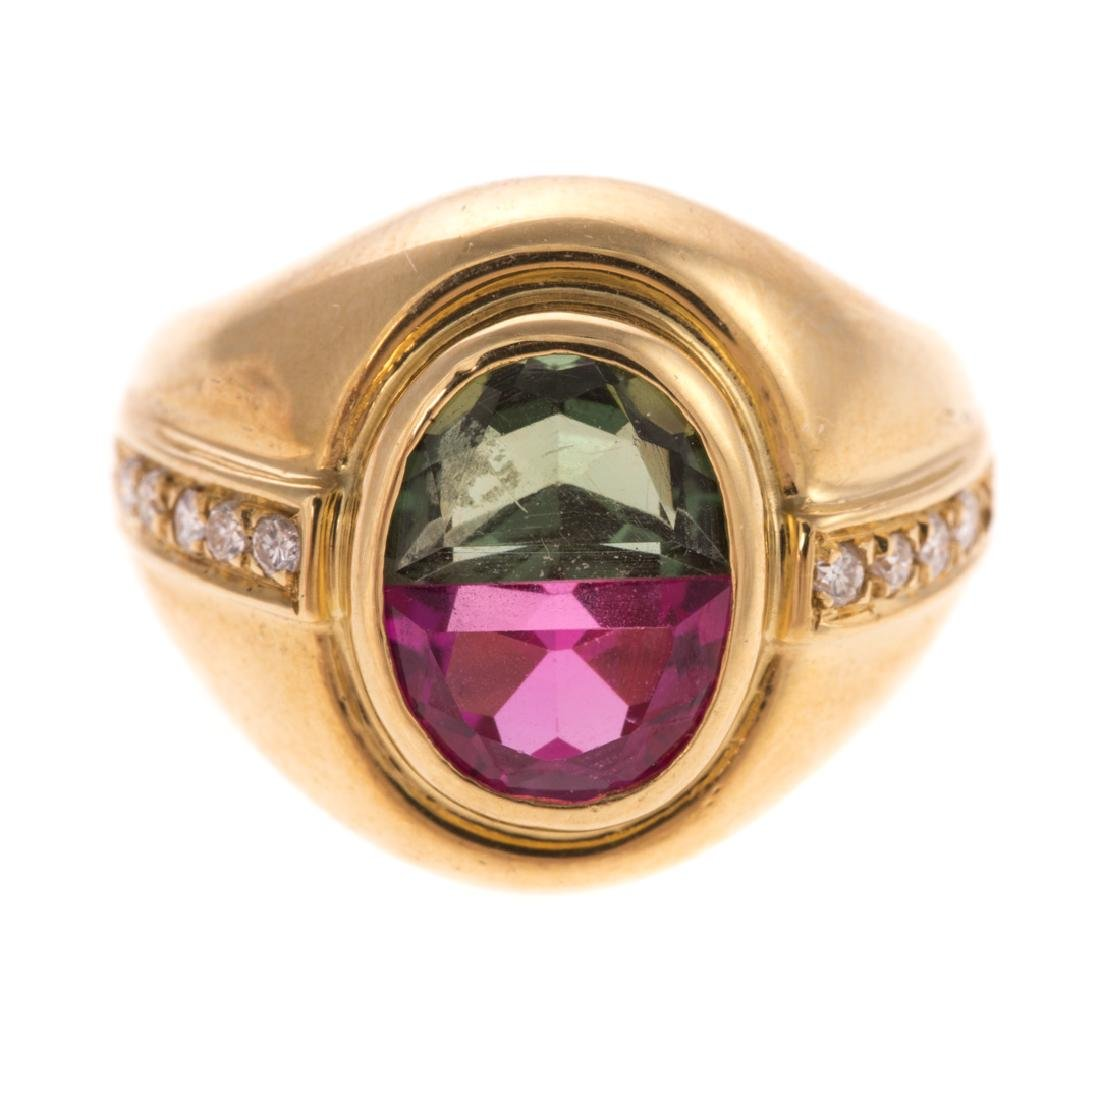 A Lady's 18K Pink & Green Tourmaline Ring